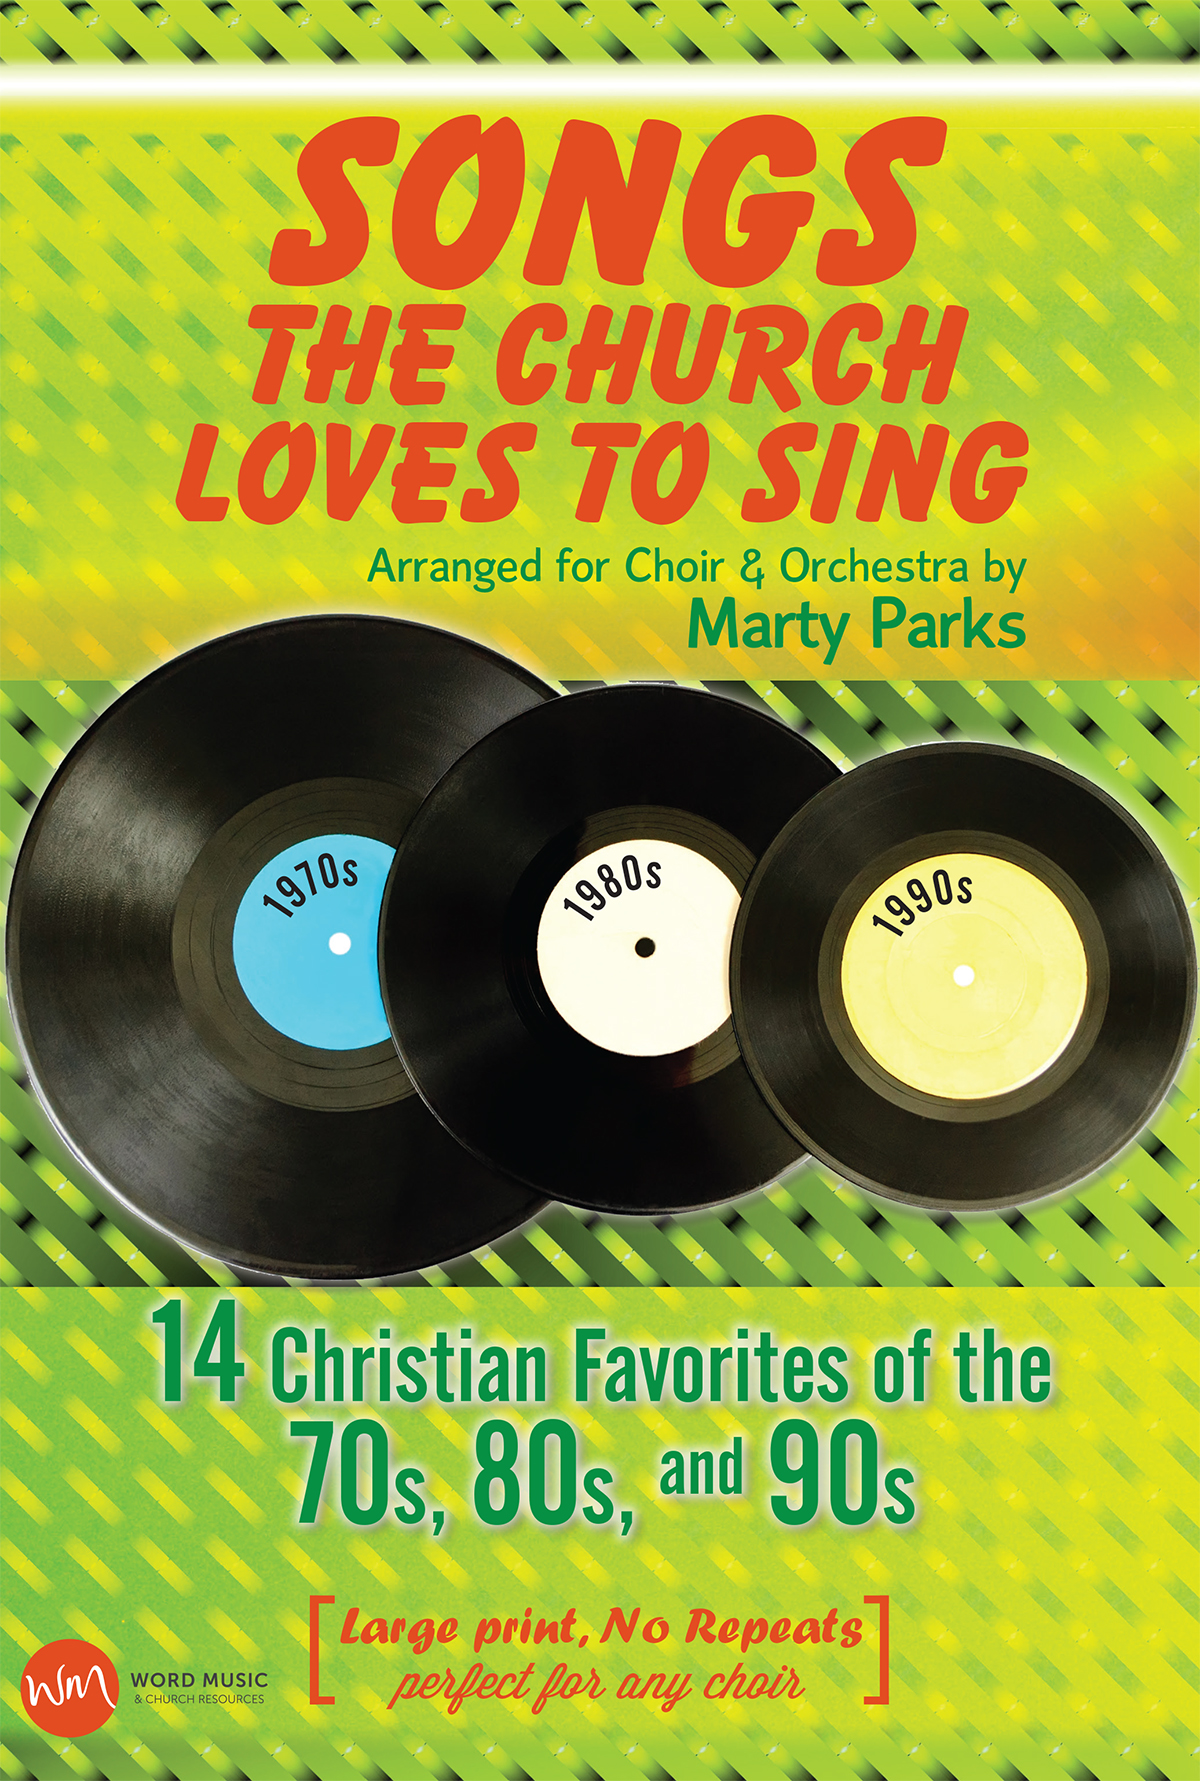 Songs the Church Loves to Sing